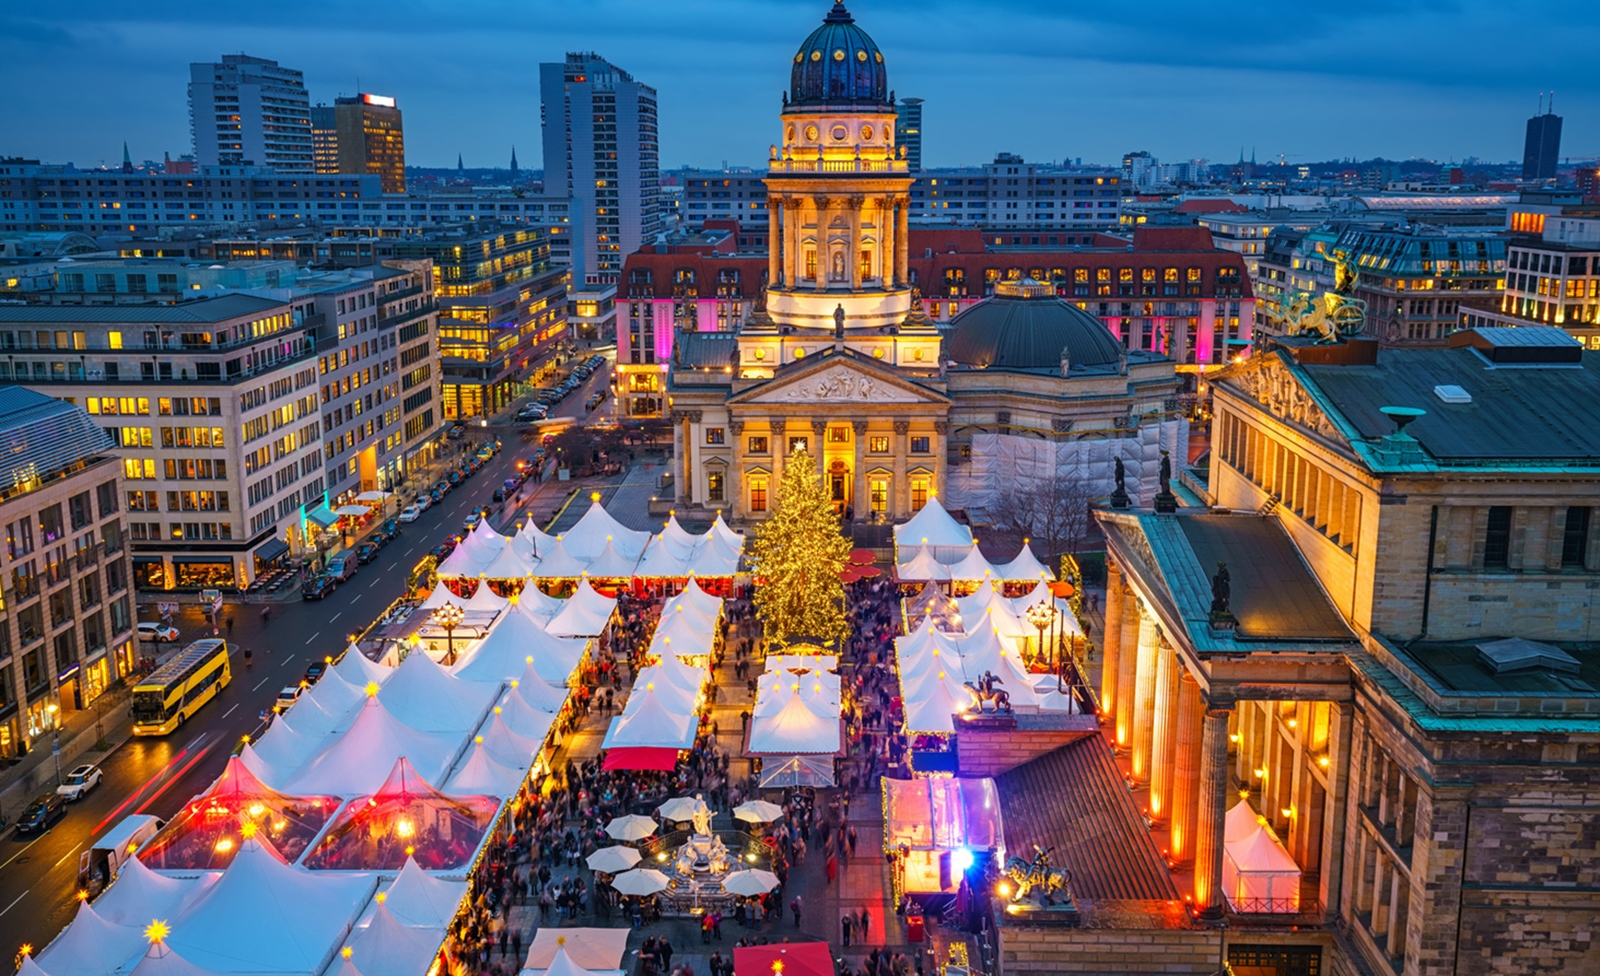 berlin weihnachtsmarkt 2017 my blog. Black Bedroom Furniture Sets. Home Design Ideas